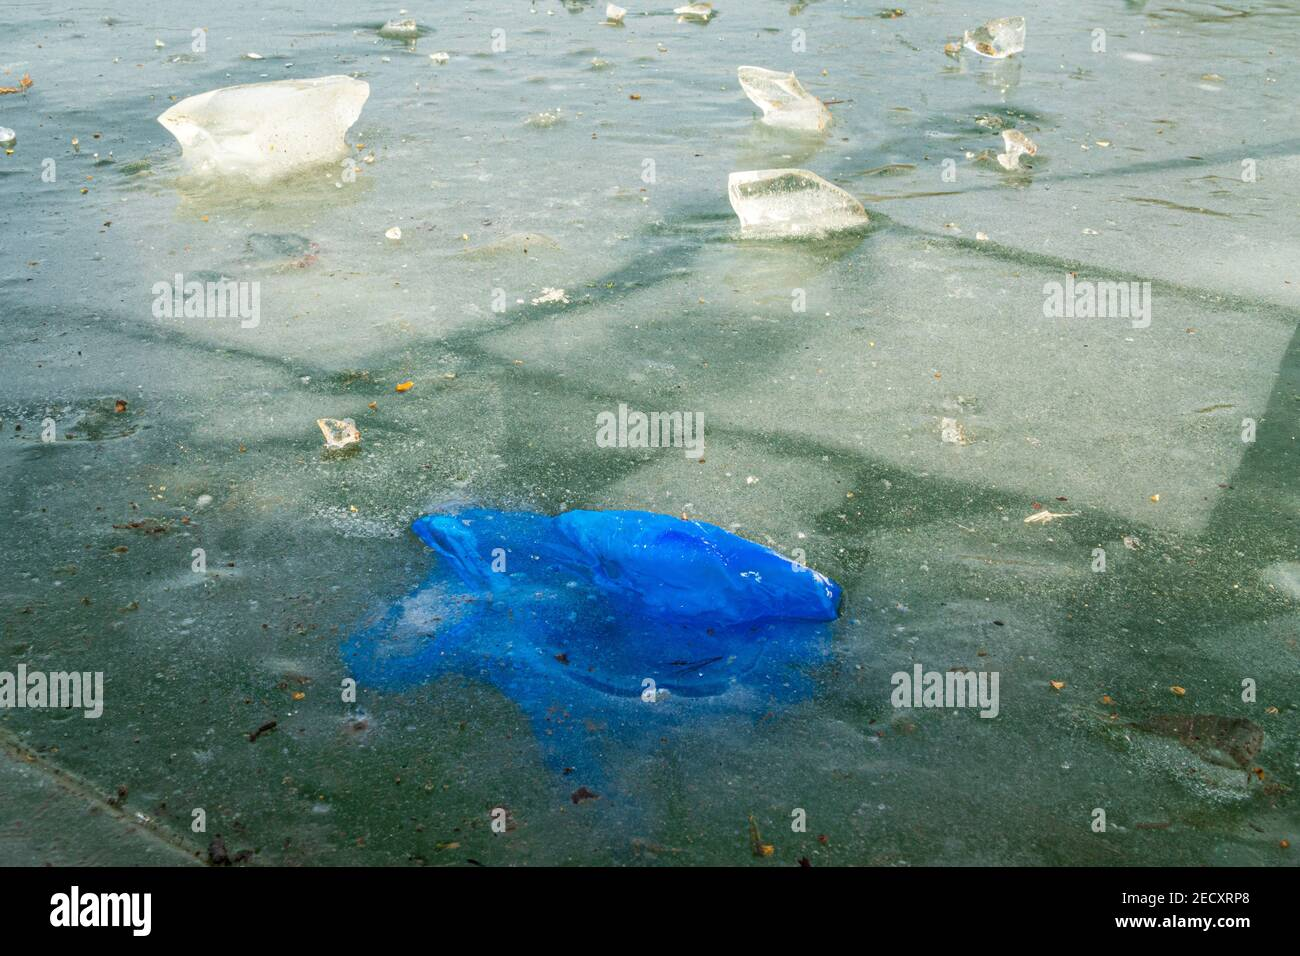 A blue plastic bag or latex glove littering the countryside and frozen in the ice of a frozen lake adding to the pollution of the local area. UK. Stock Photo